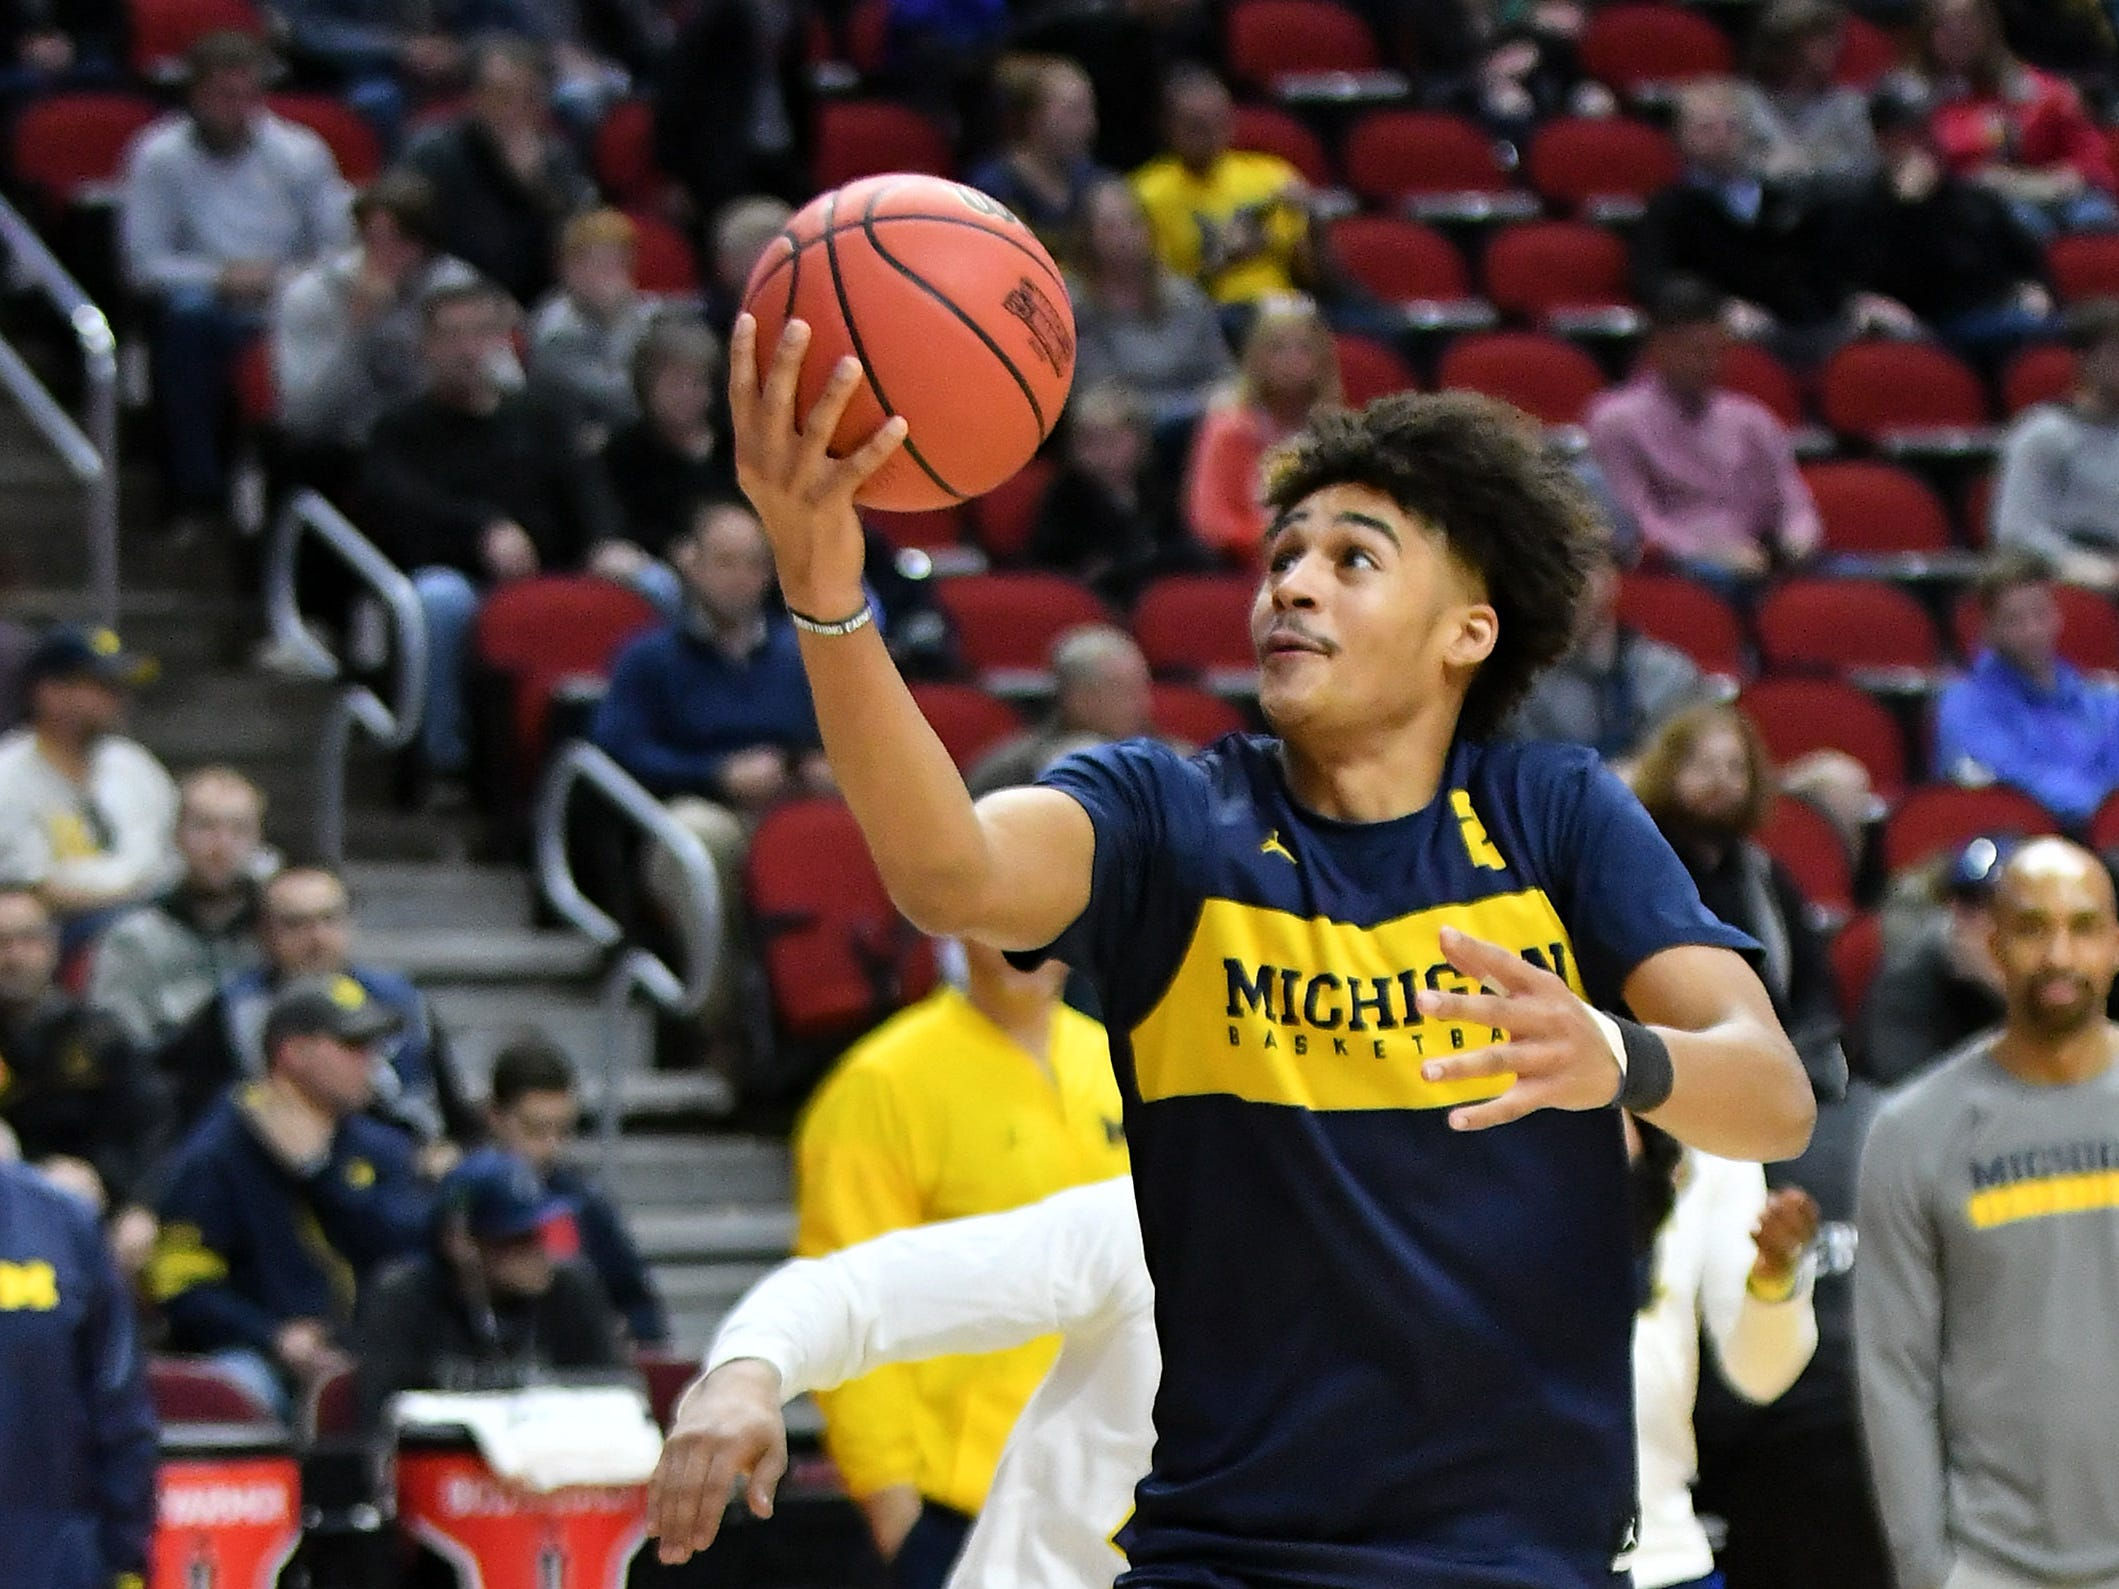 Michigan guard Jordan Poole goes to the basket at practice.